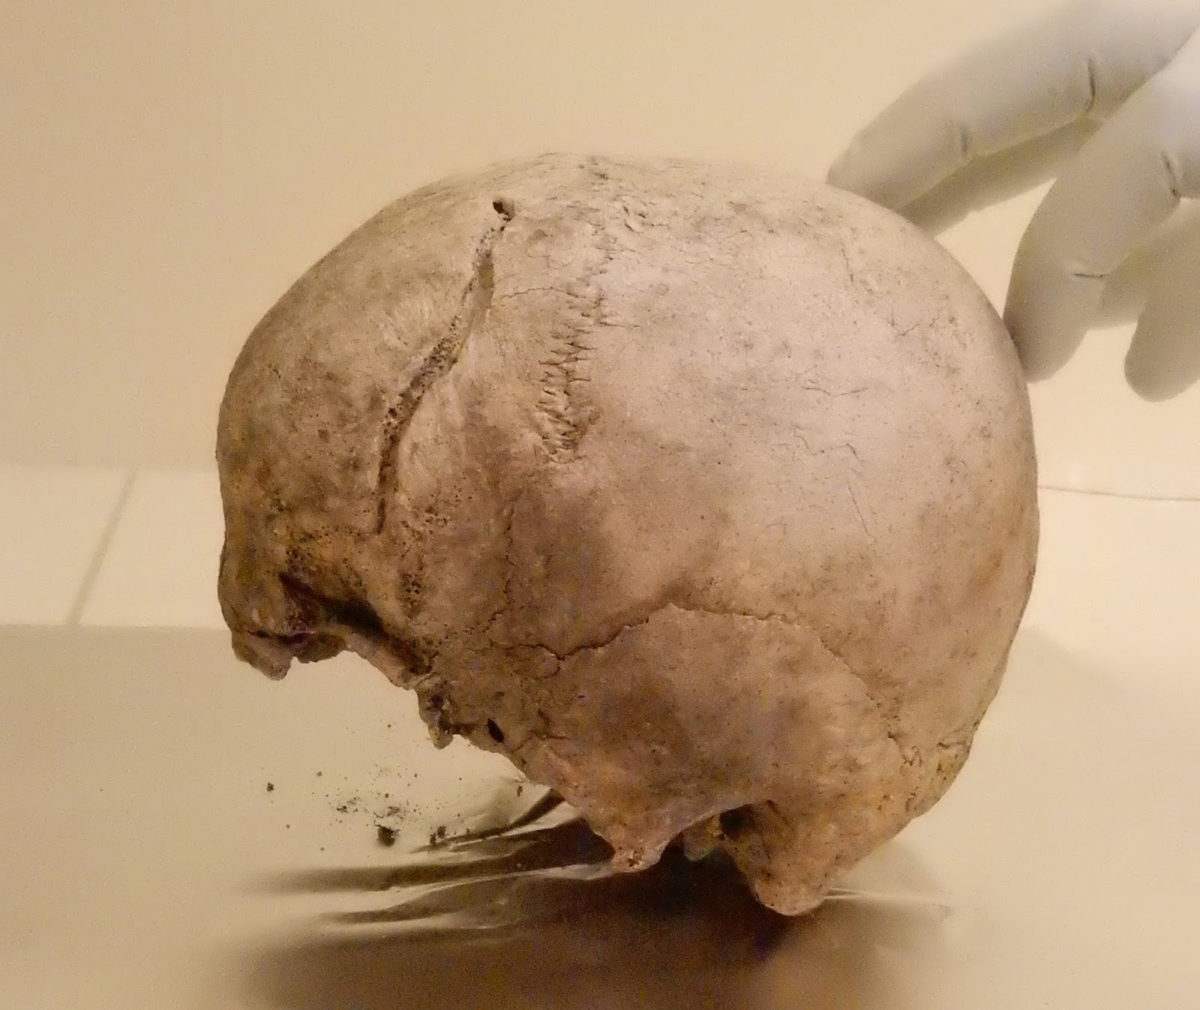 Skull included in this study from Ölsund, Hälsingland, Sweden, dating to around 2,300 BCE, in the ancient DNA laboratory at the Max Planck Institute for the Science of Human History. Credit: Alissa Mittnik